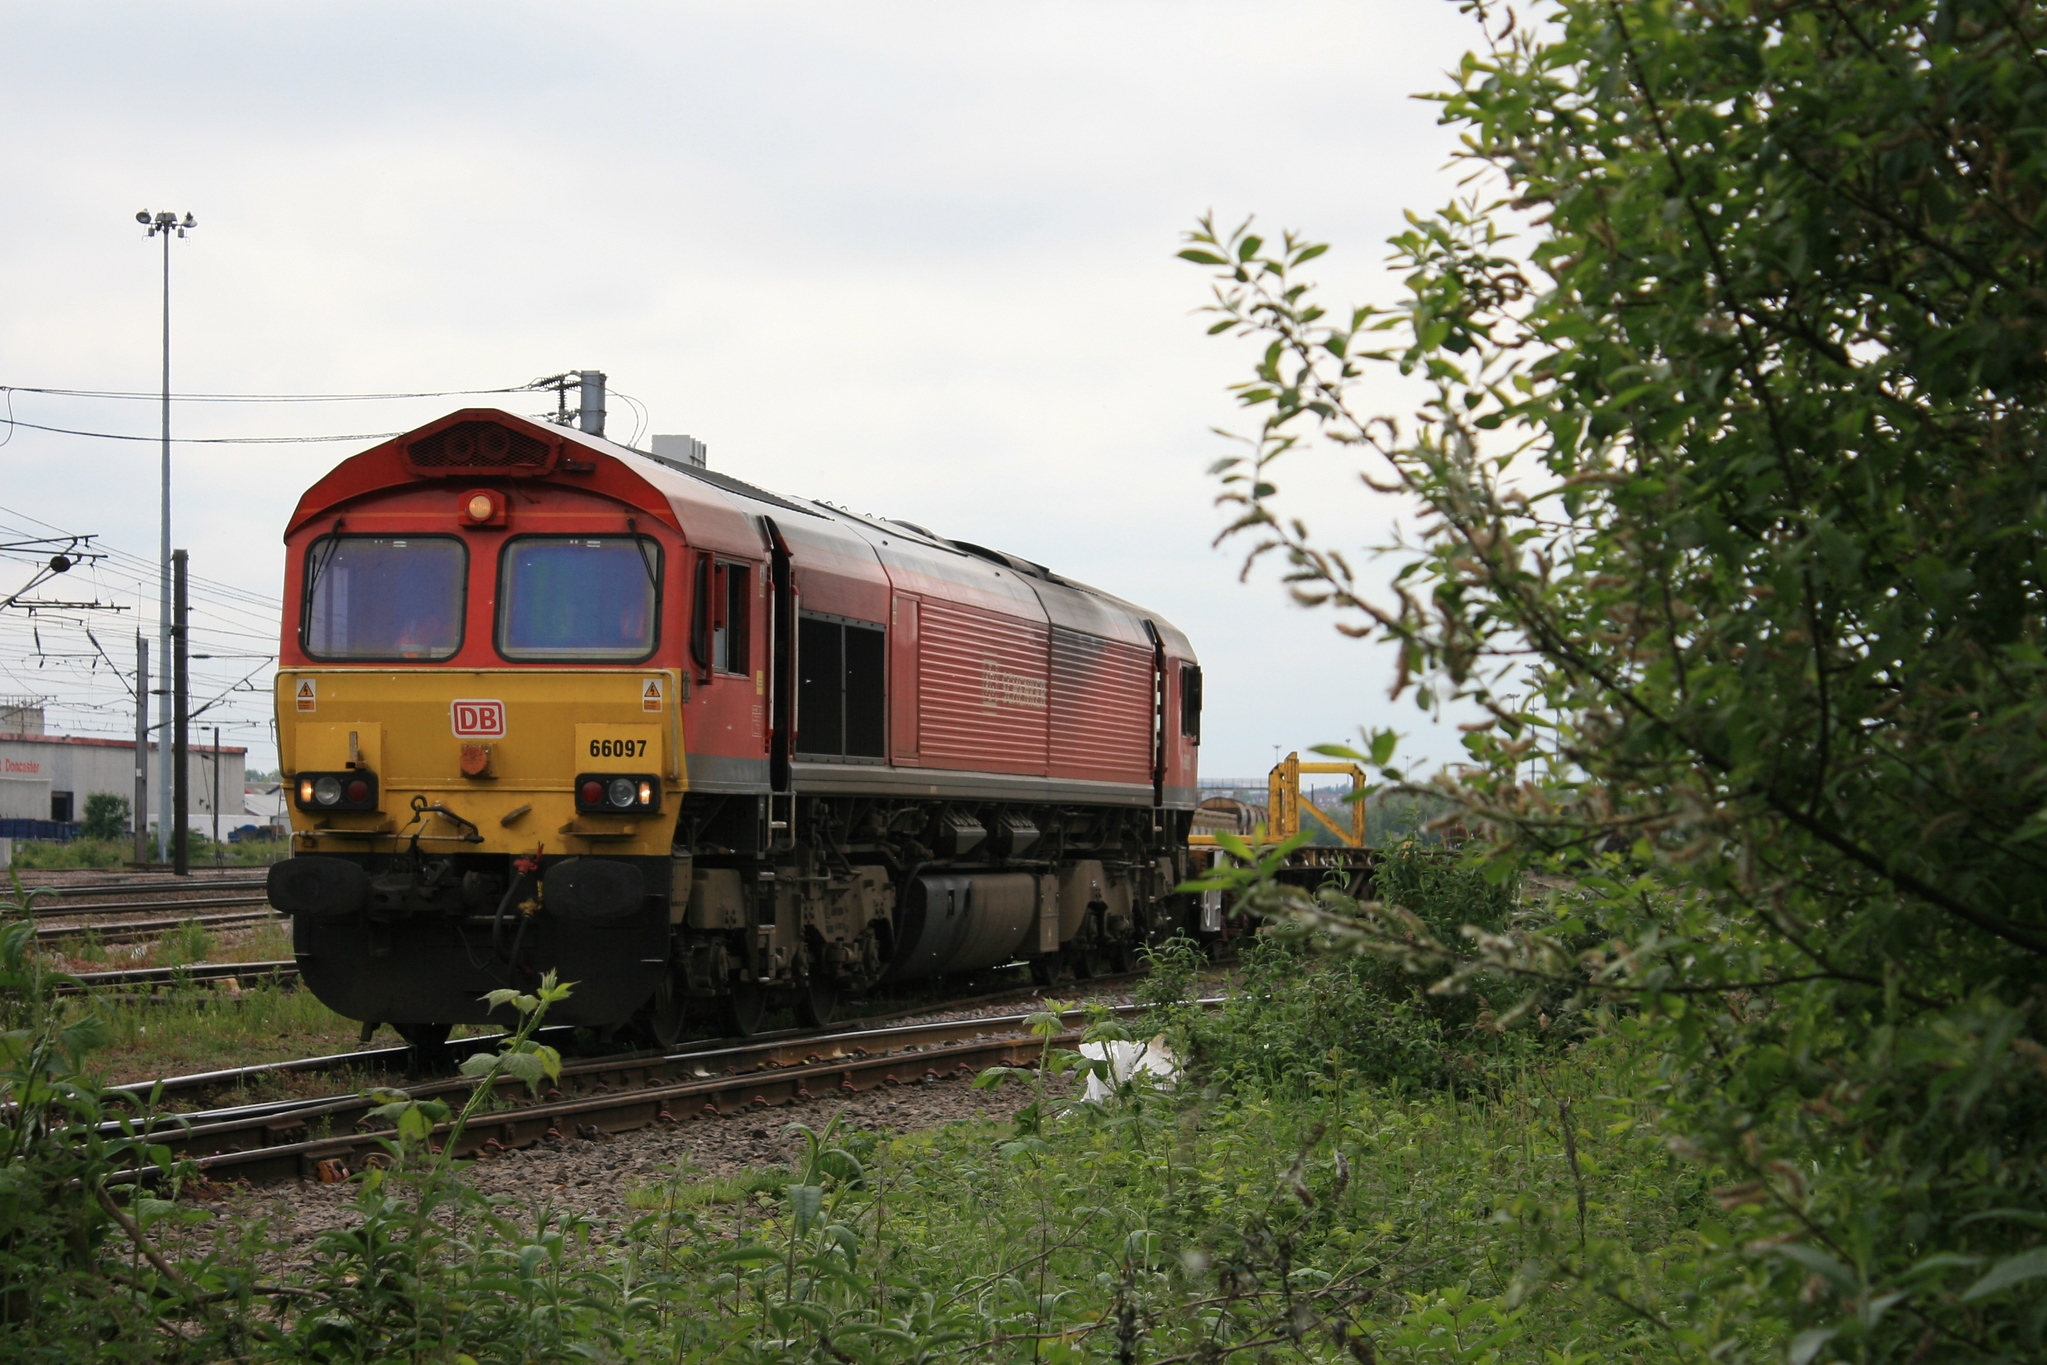 66097_DBS_Doncaster_03062016 (11)